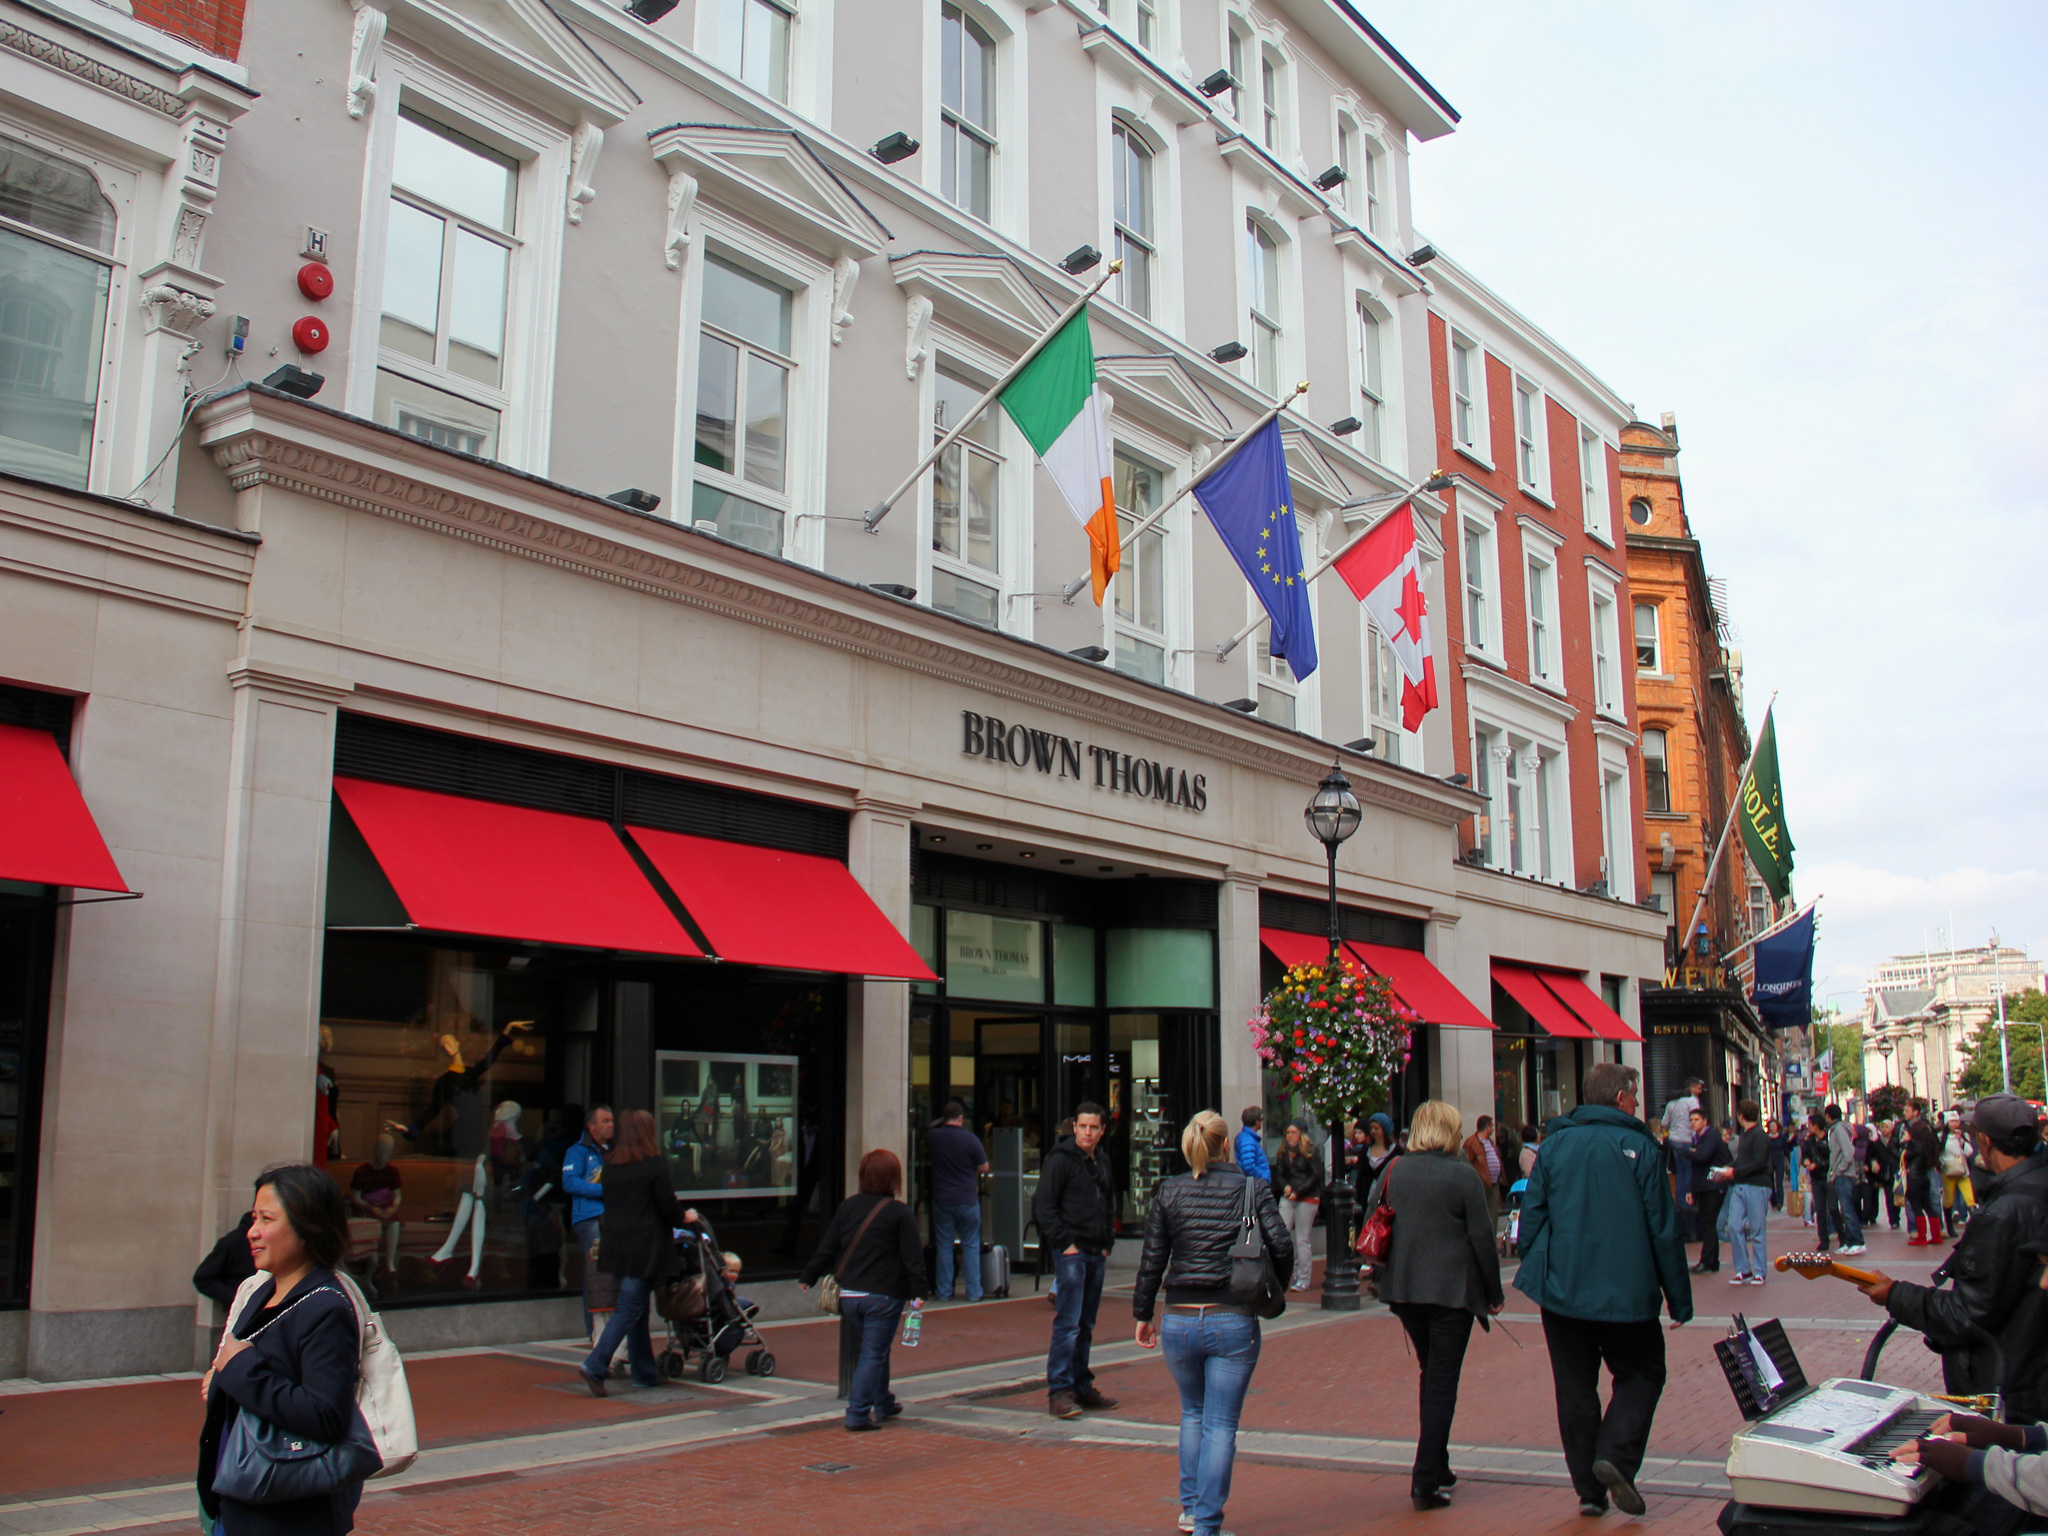 Exterior of Brown Thomas department store in Dublin